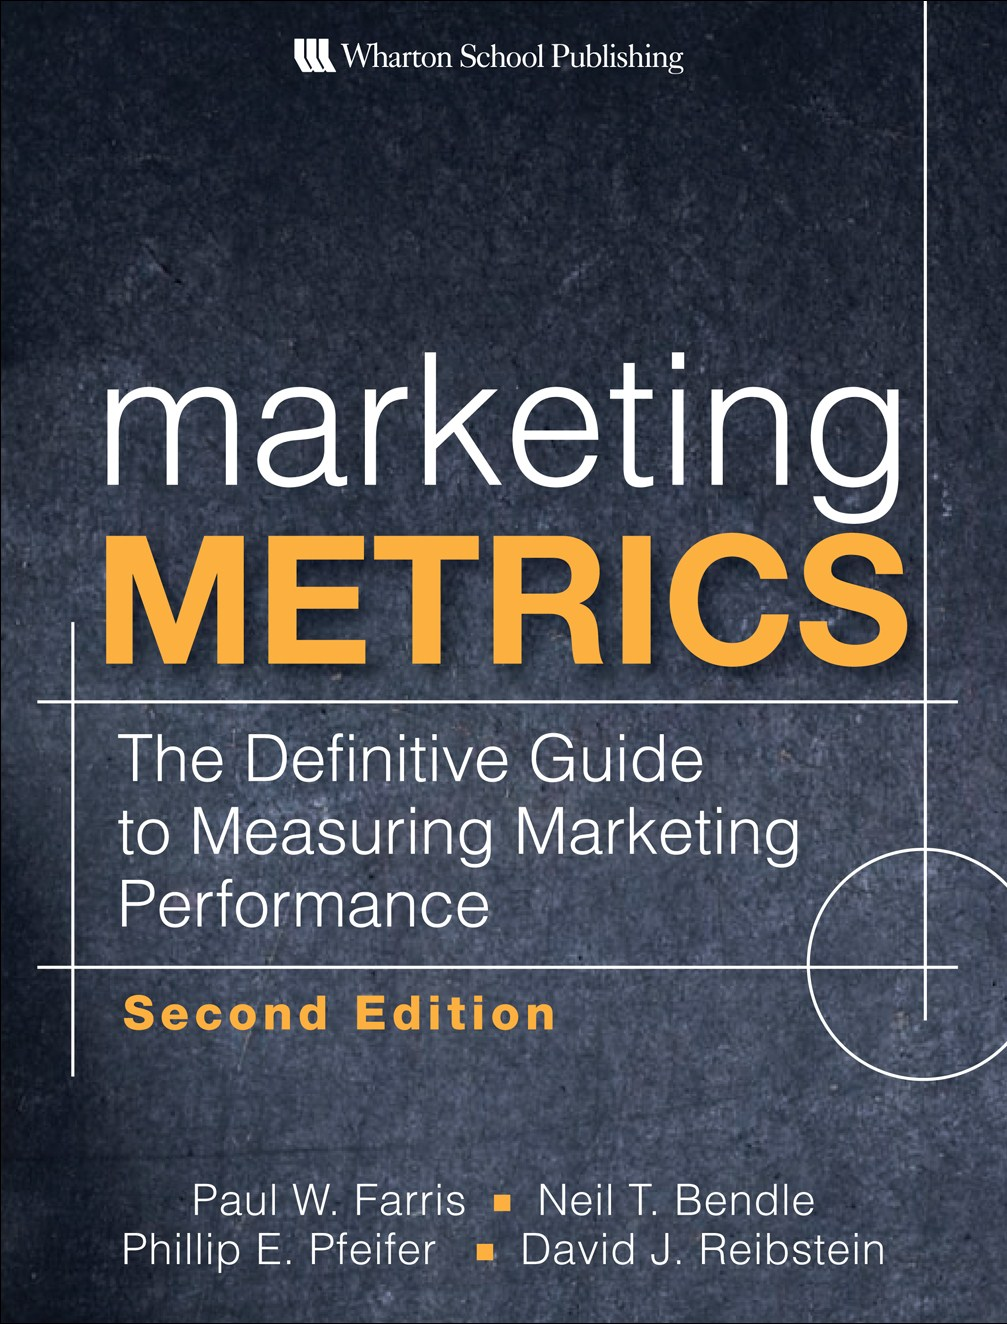 Marketing Metrics: The Definitive Guide to Measuring Marketing Performance, CourseSmart eTextbook